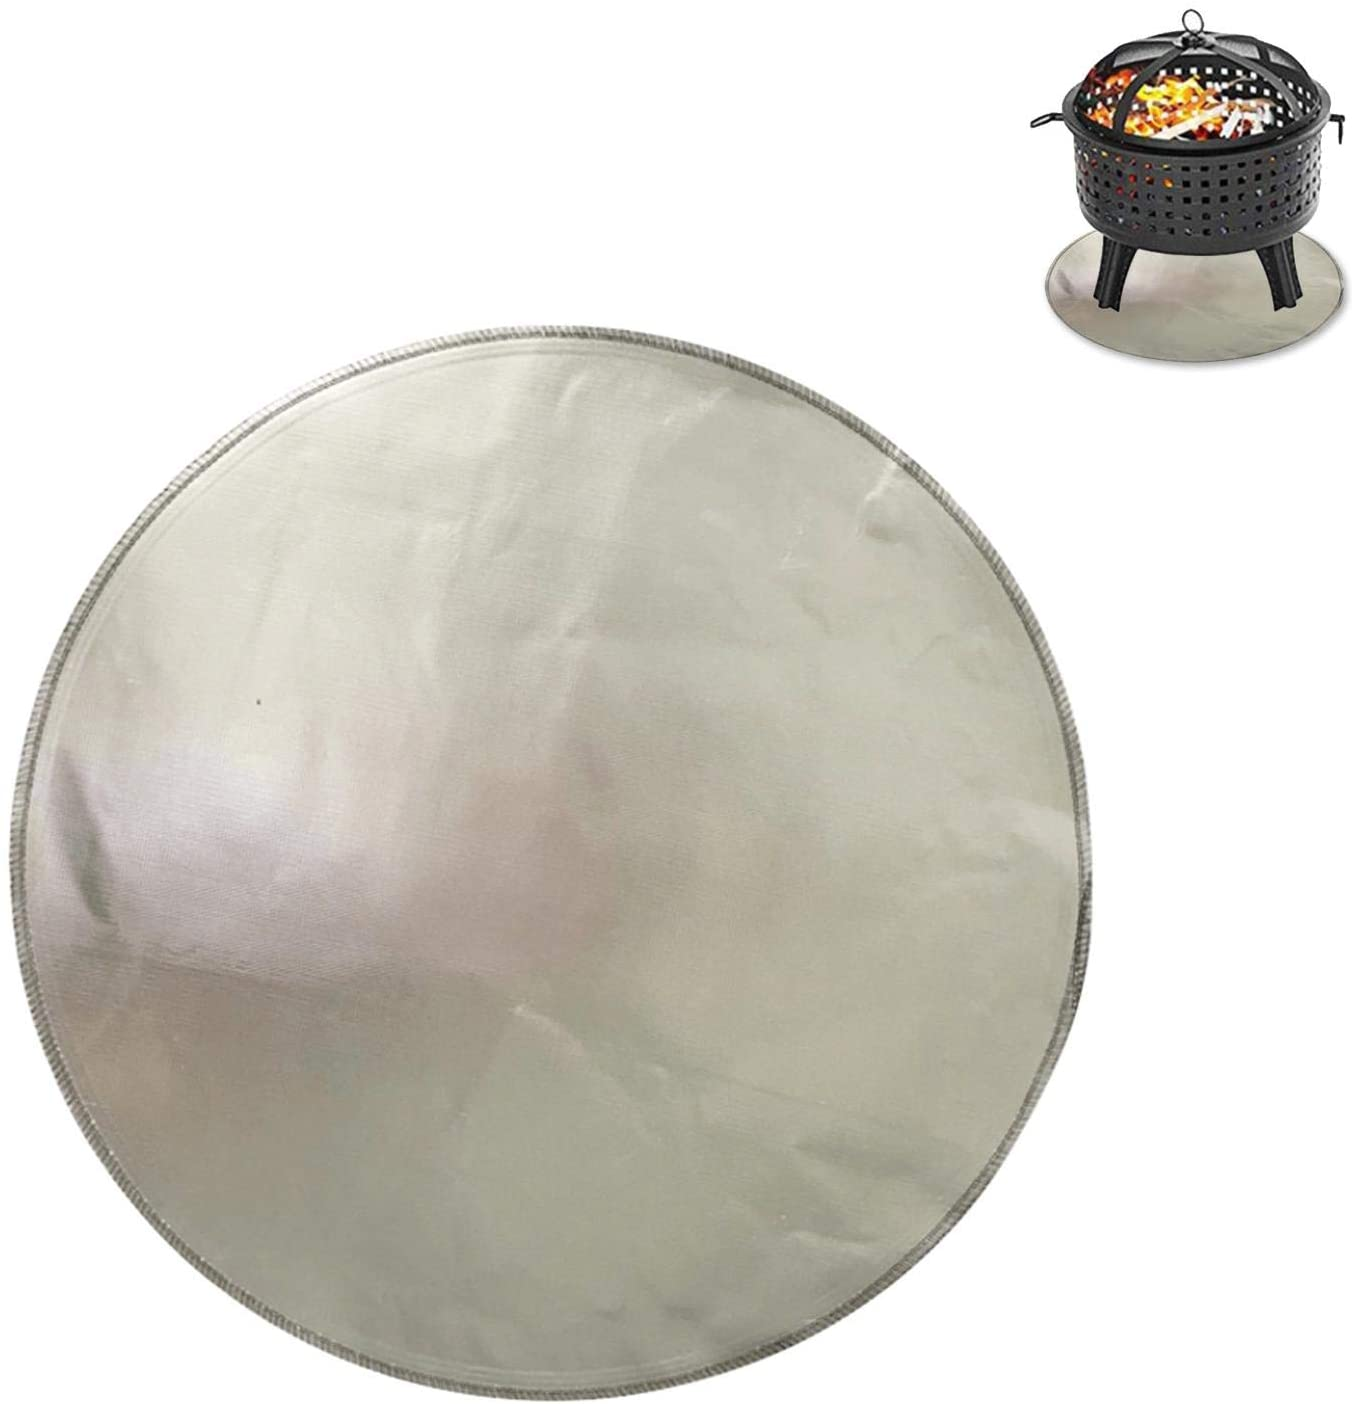 NMSLA 24/36 Inch Round Fire Pit Mat & Grill Mat Deck Protector,Fireproof Grill Pad Washable Terrace Floor Mat-Suitable